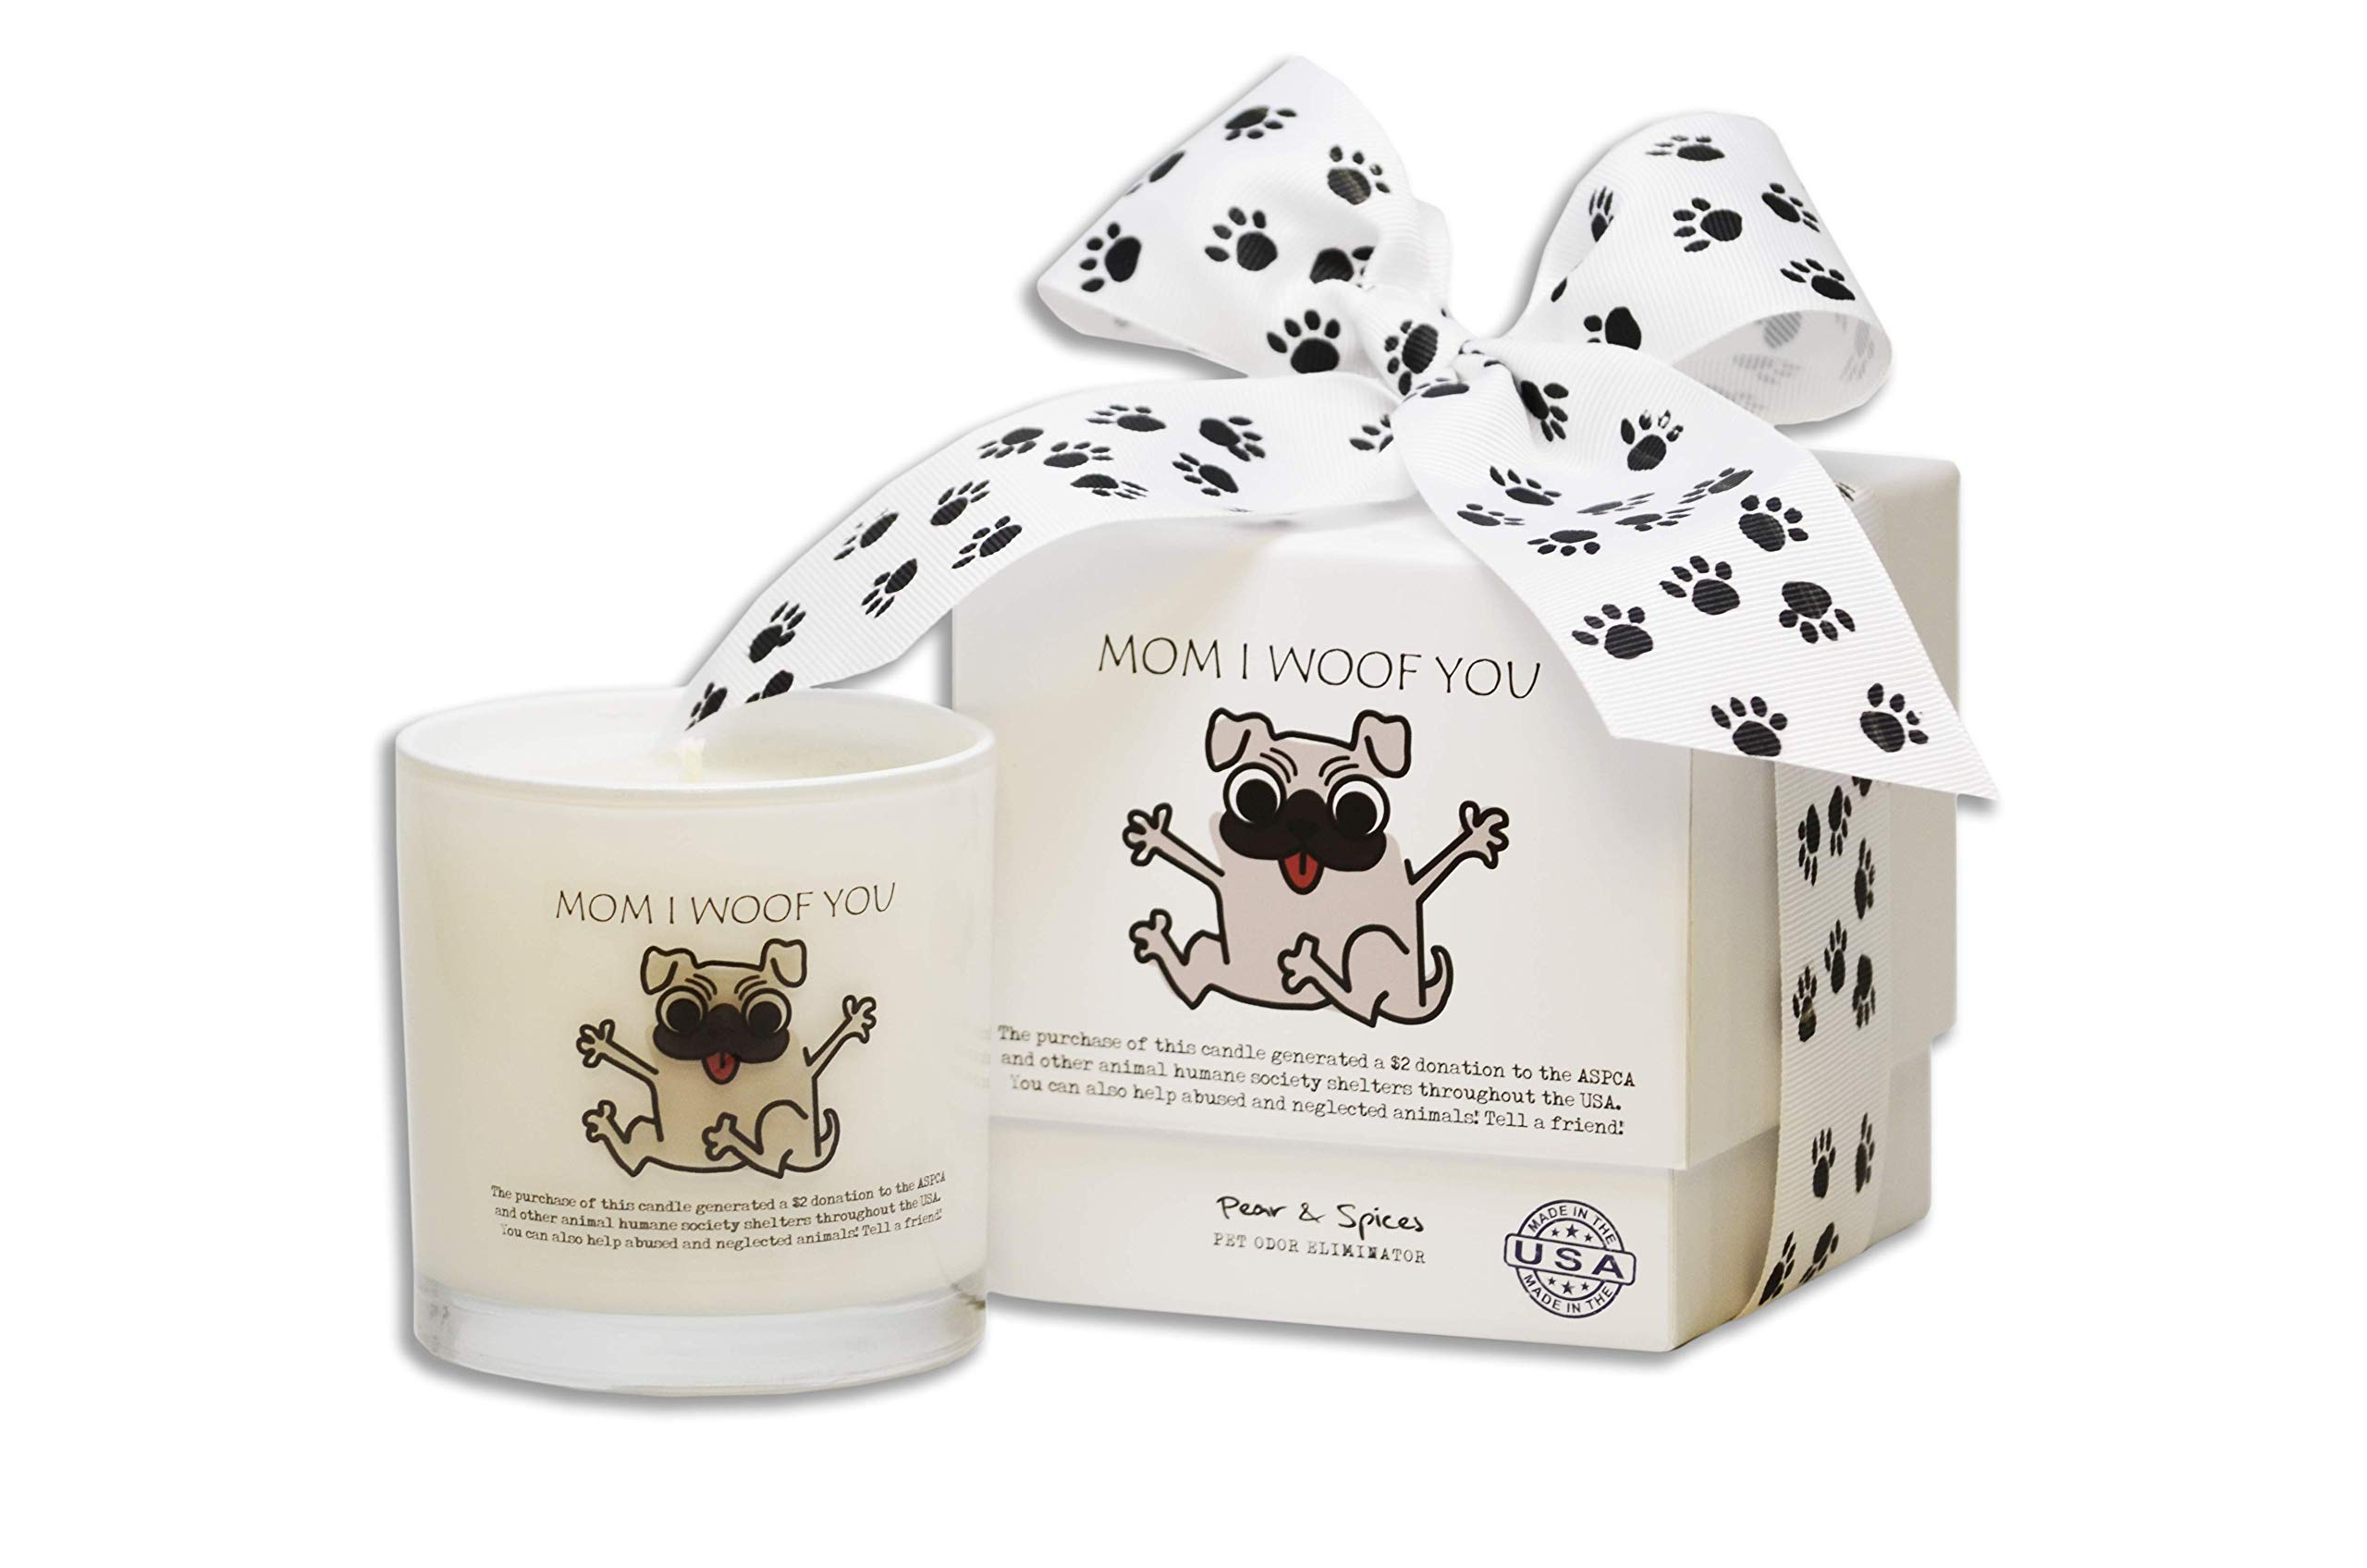 Pear & Spices - 9 Oz. Jar with Gift Box - $2 from this sale will be donated to the ASPCA and other Animal Humane Society Shelters - Highly Scented Candles